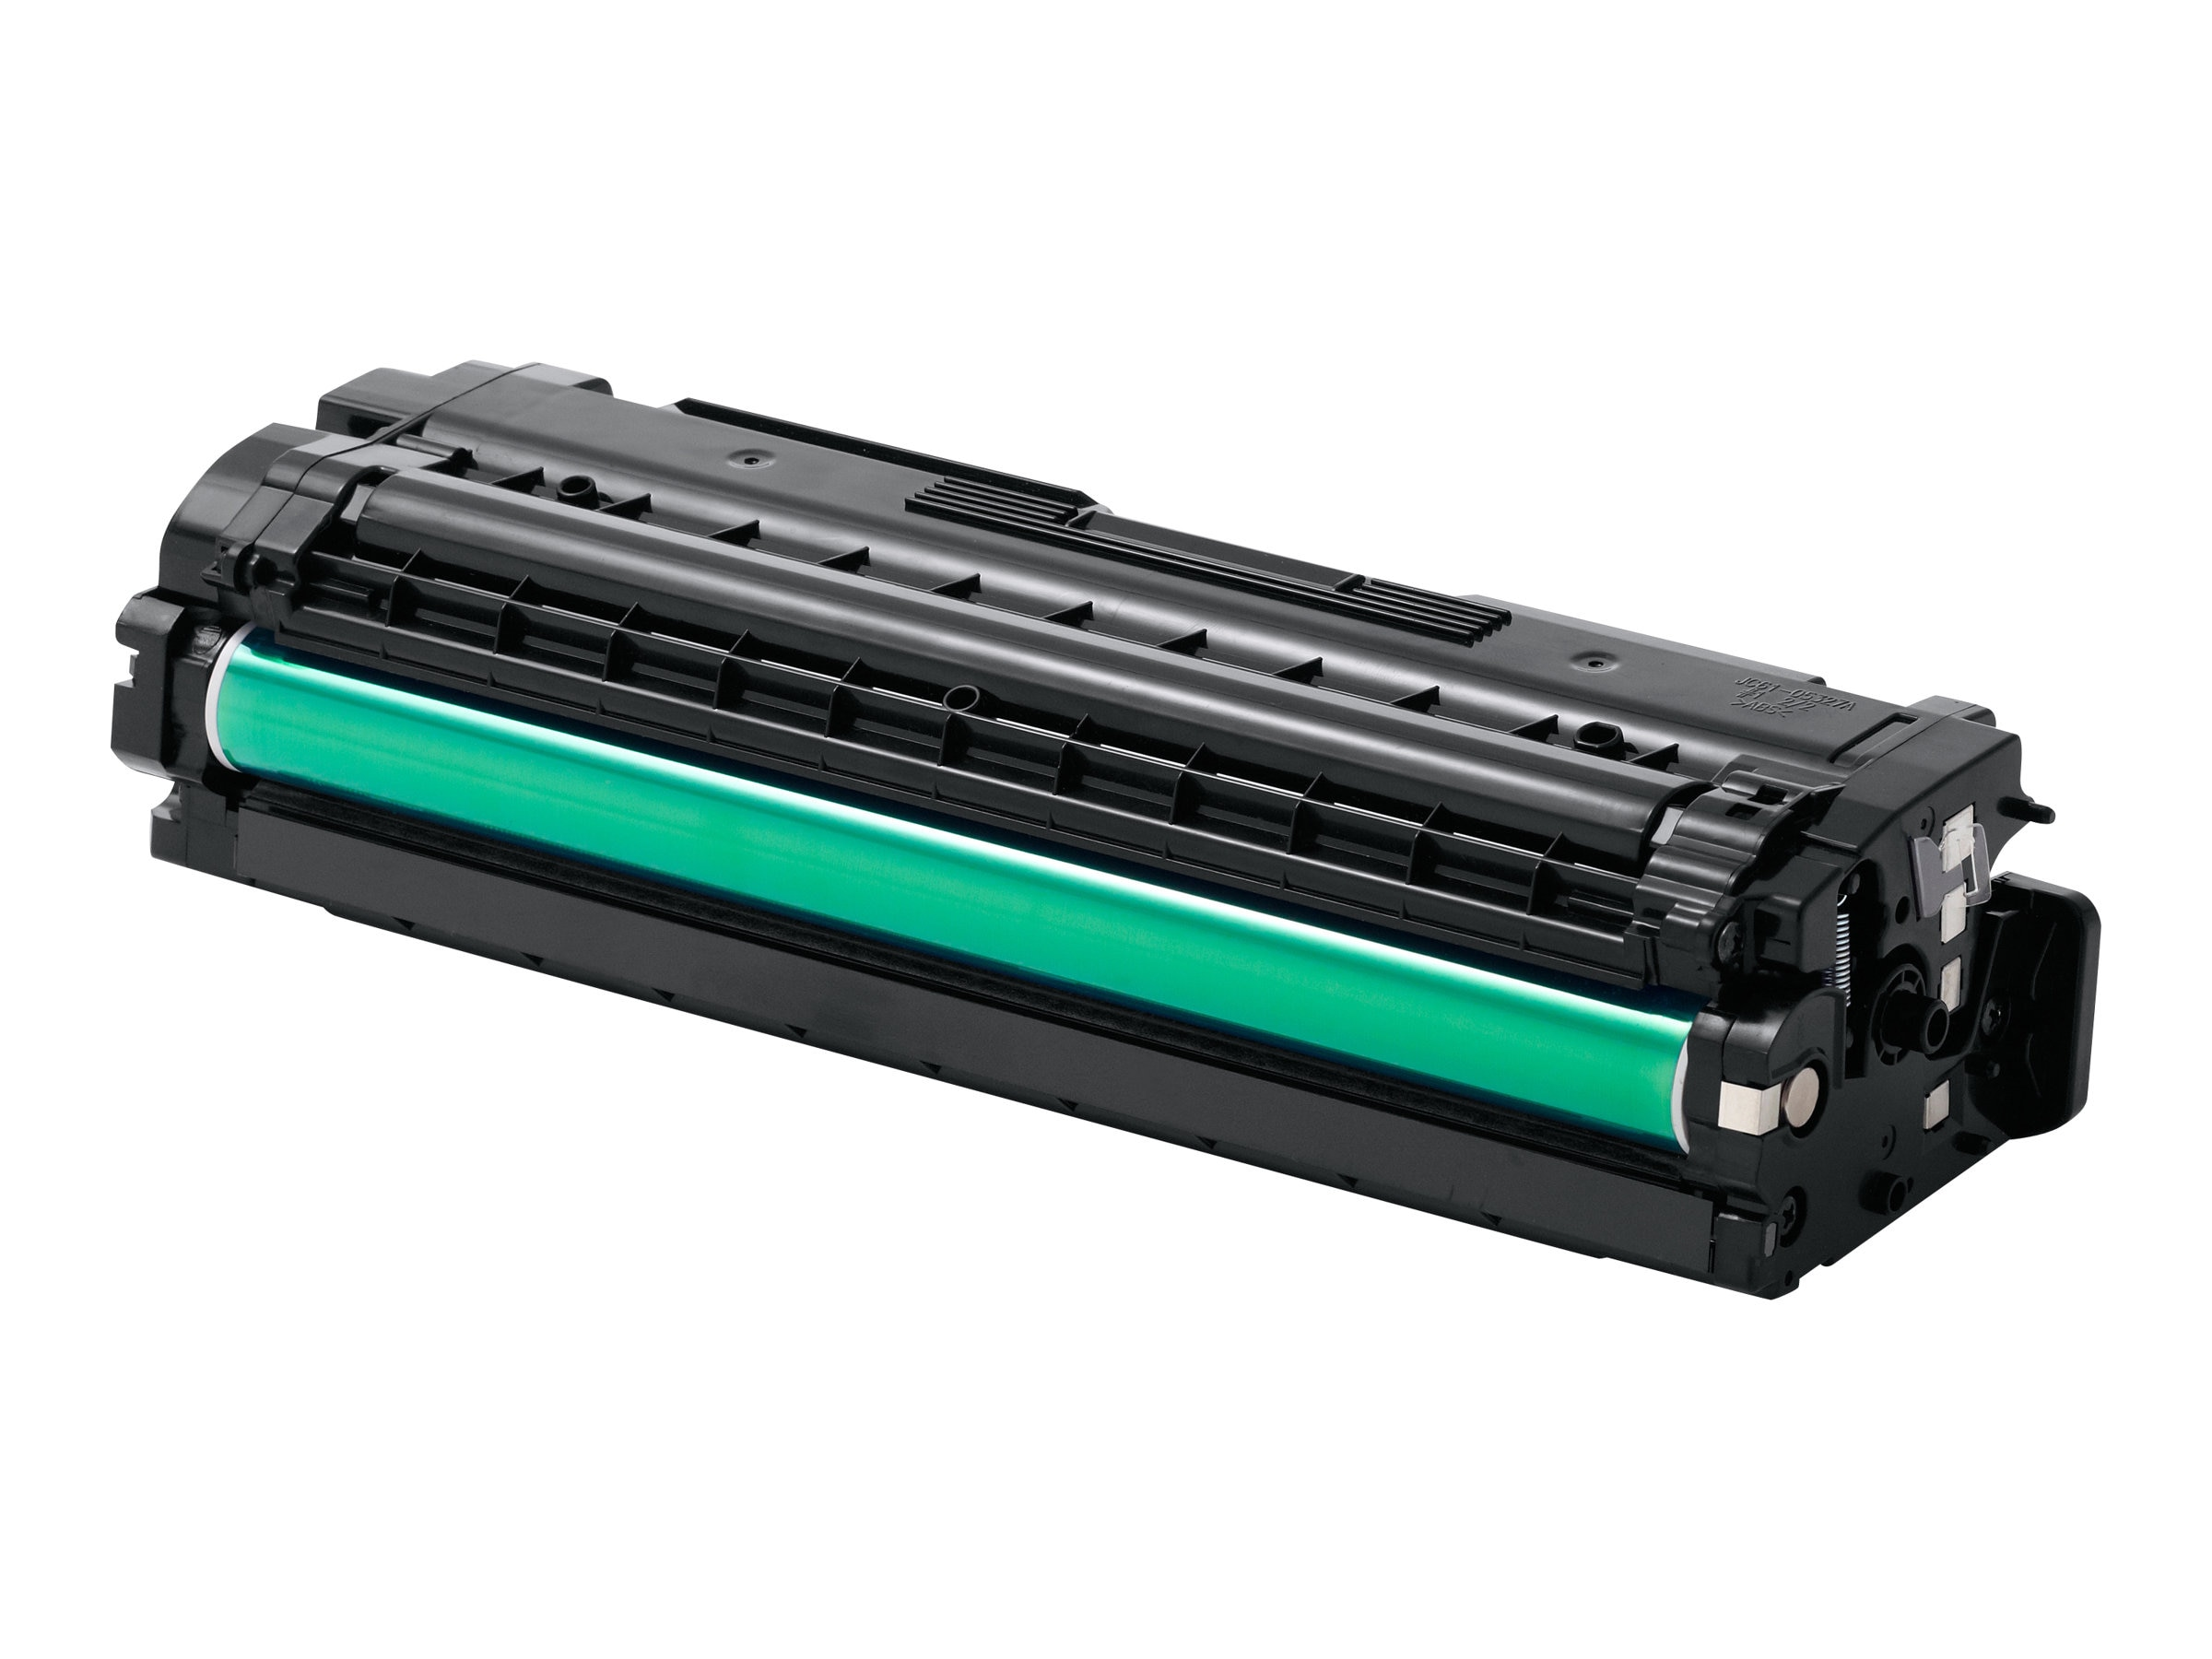 Samsung Cyan Toner Cartridge for CLP-680ND Color Laser Printer & CLX-6260FW & CLX-6260FD Color MFPs, CLT-C506S